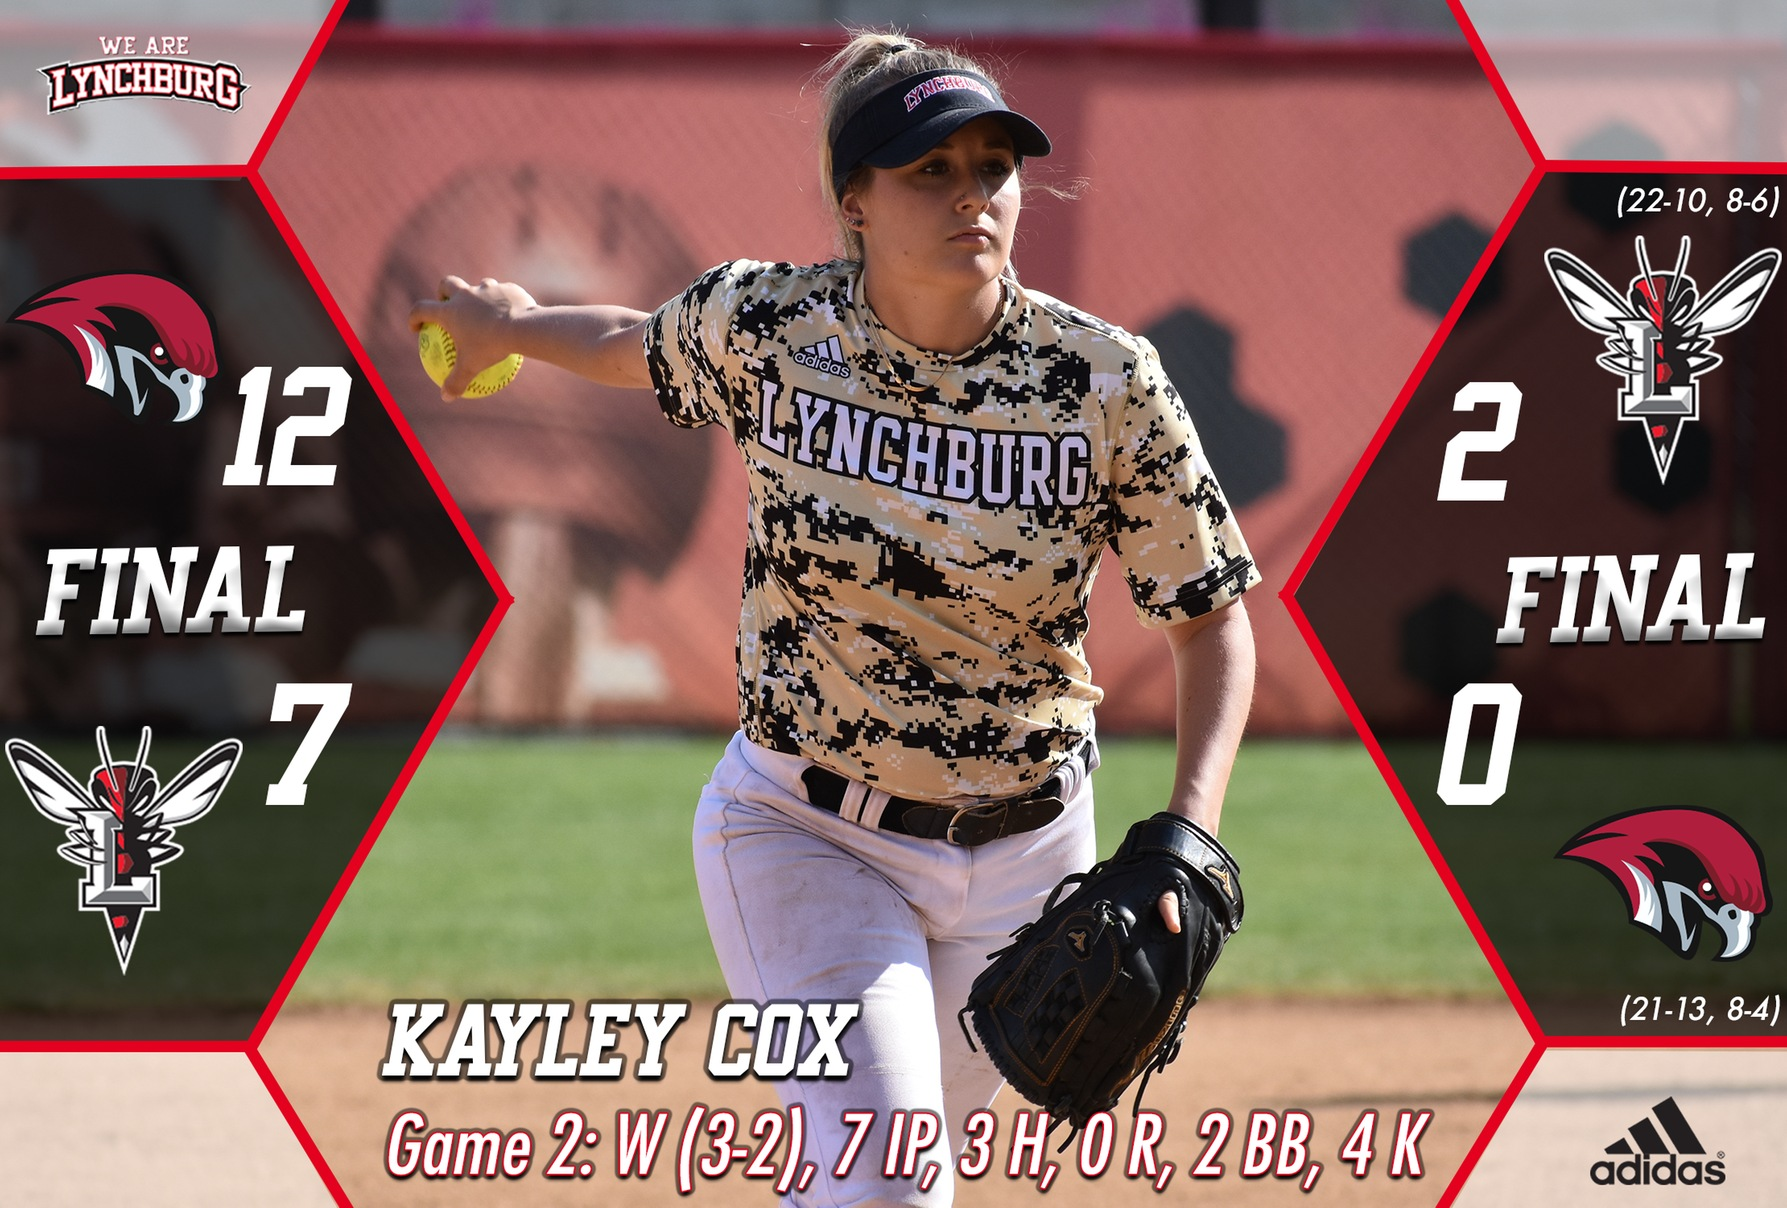 Kayley Cox in the windup.